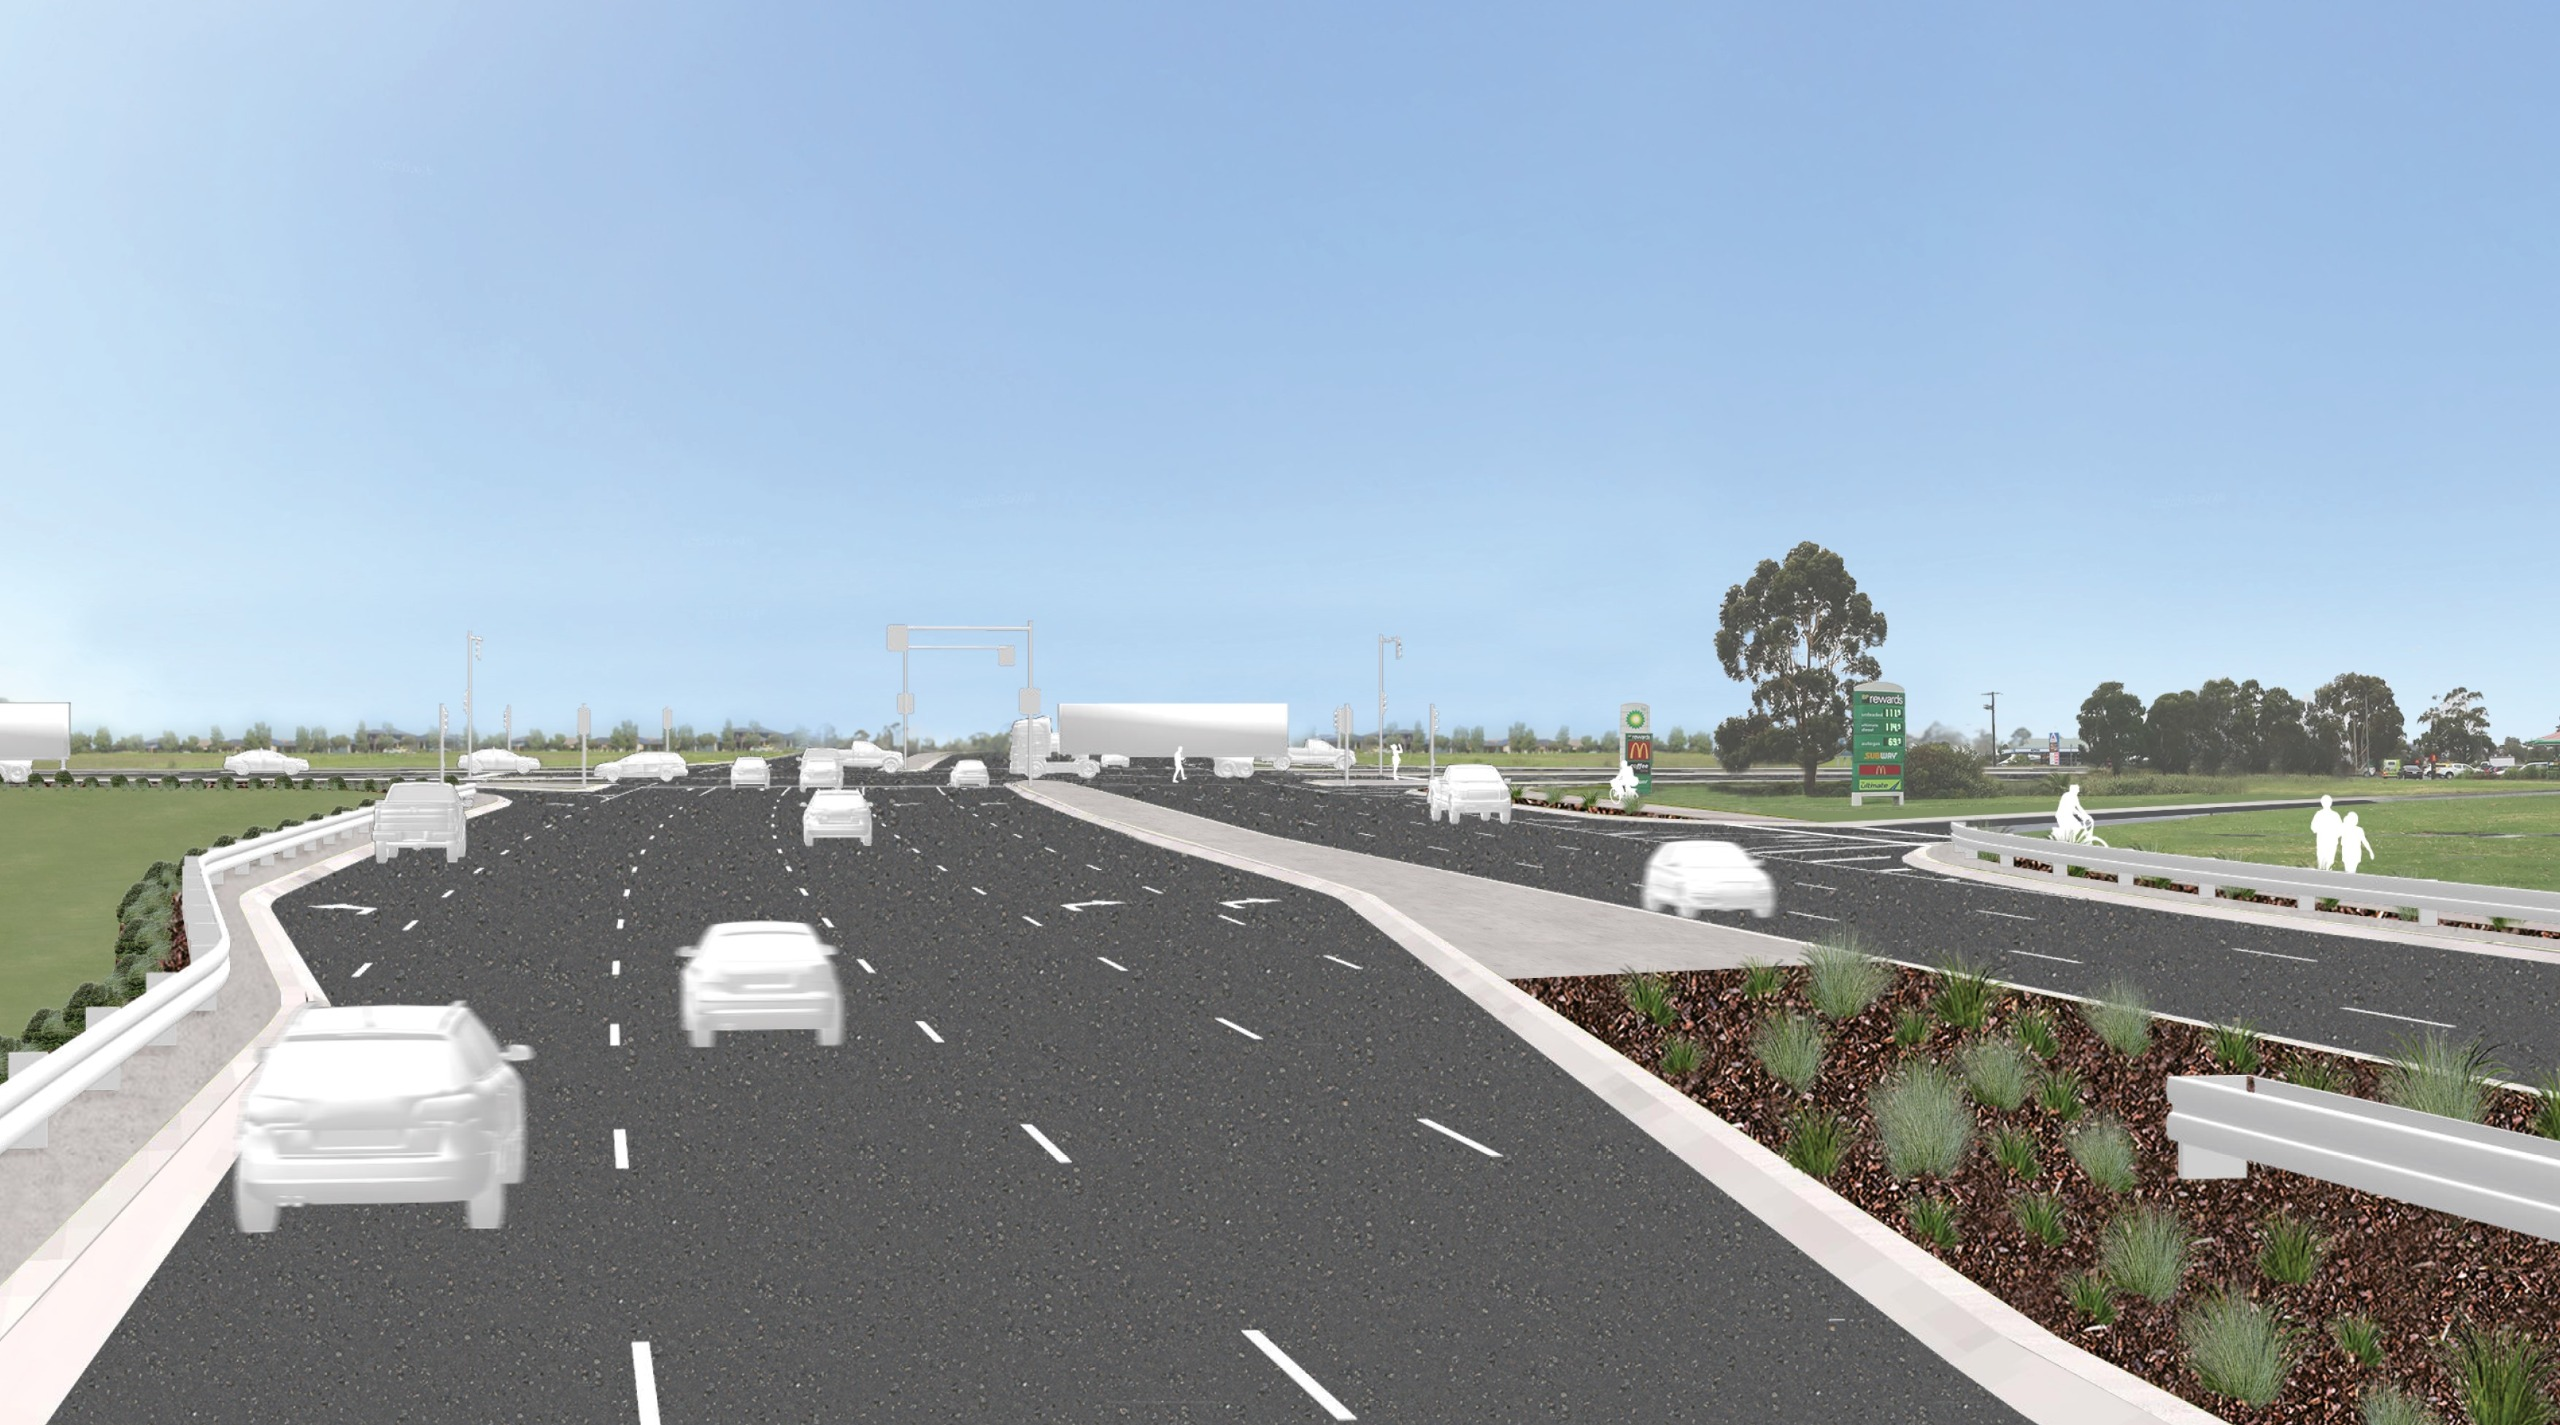 Artist's impression of cars driving through the Western Port Highway intersection 1 year after project completion